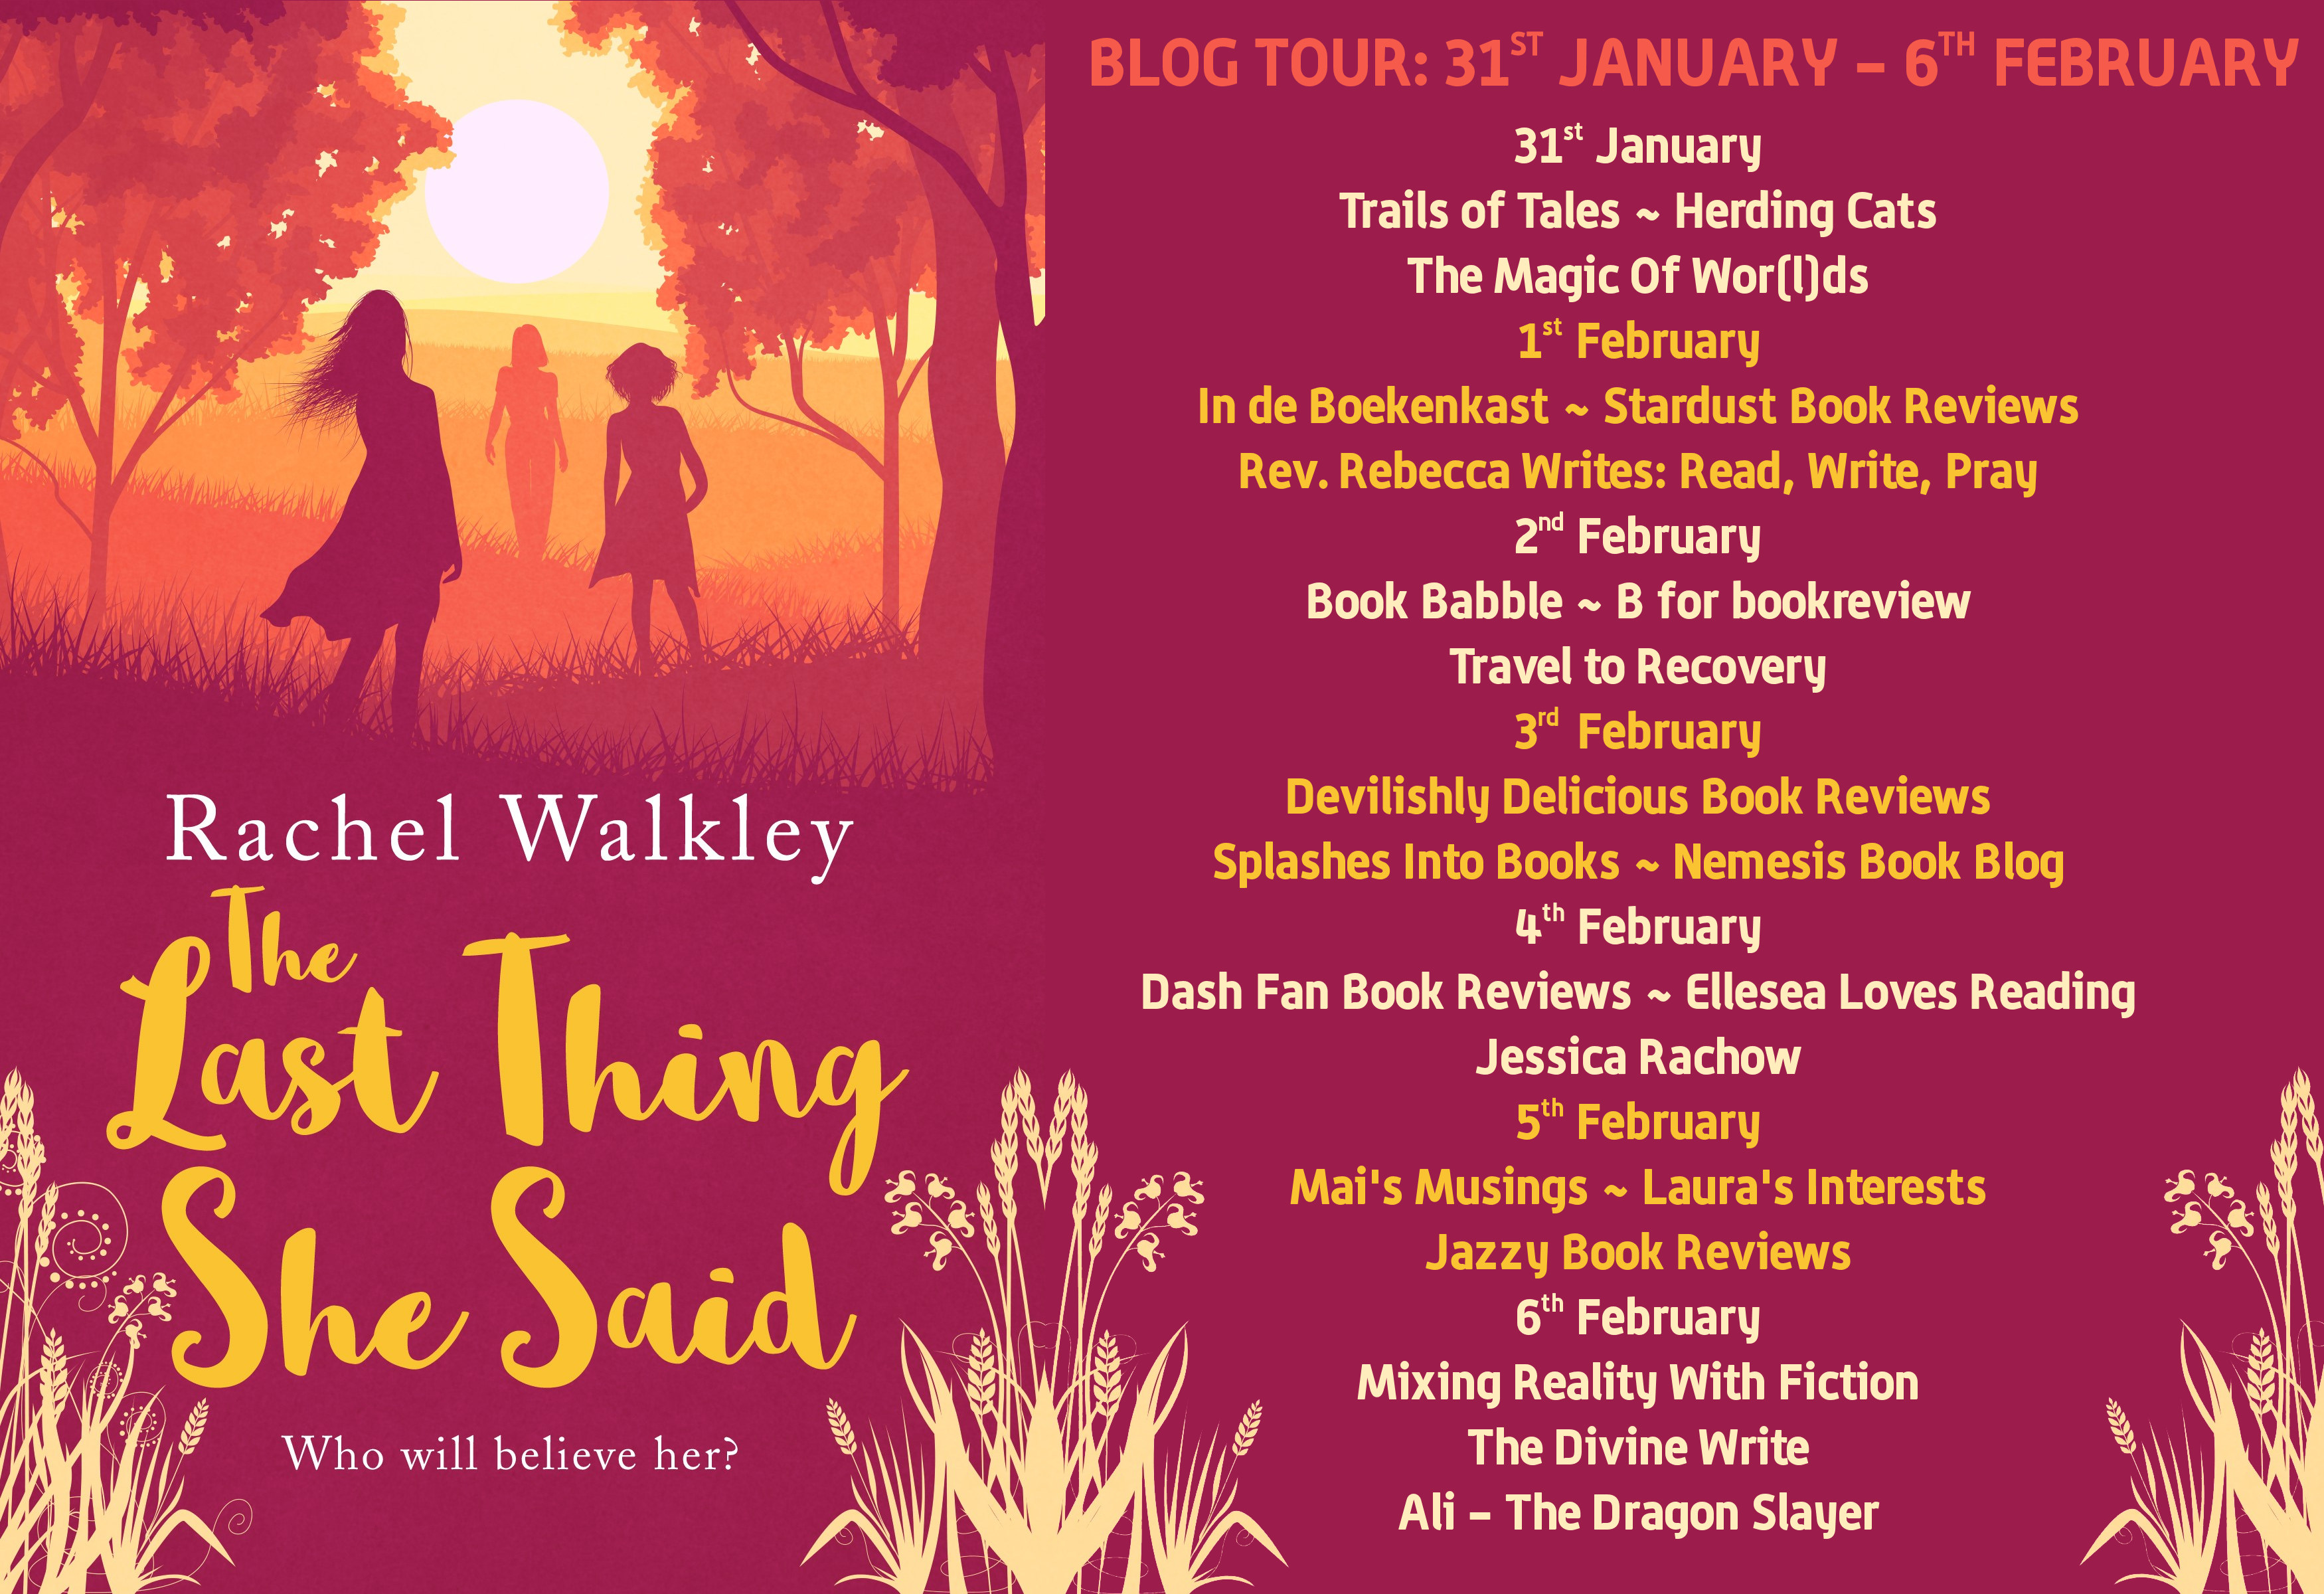 The-Last-Thing-She-Said-Full-Tour-Banner